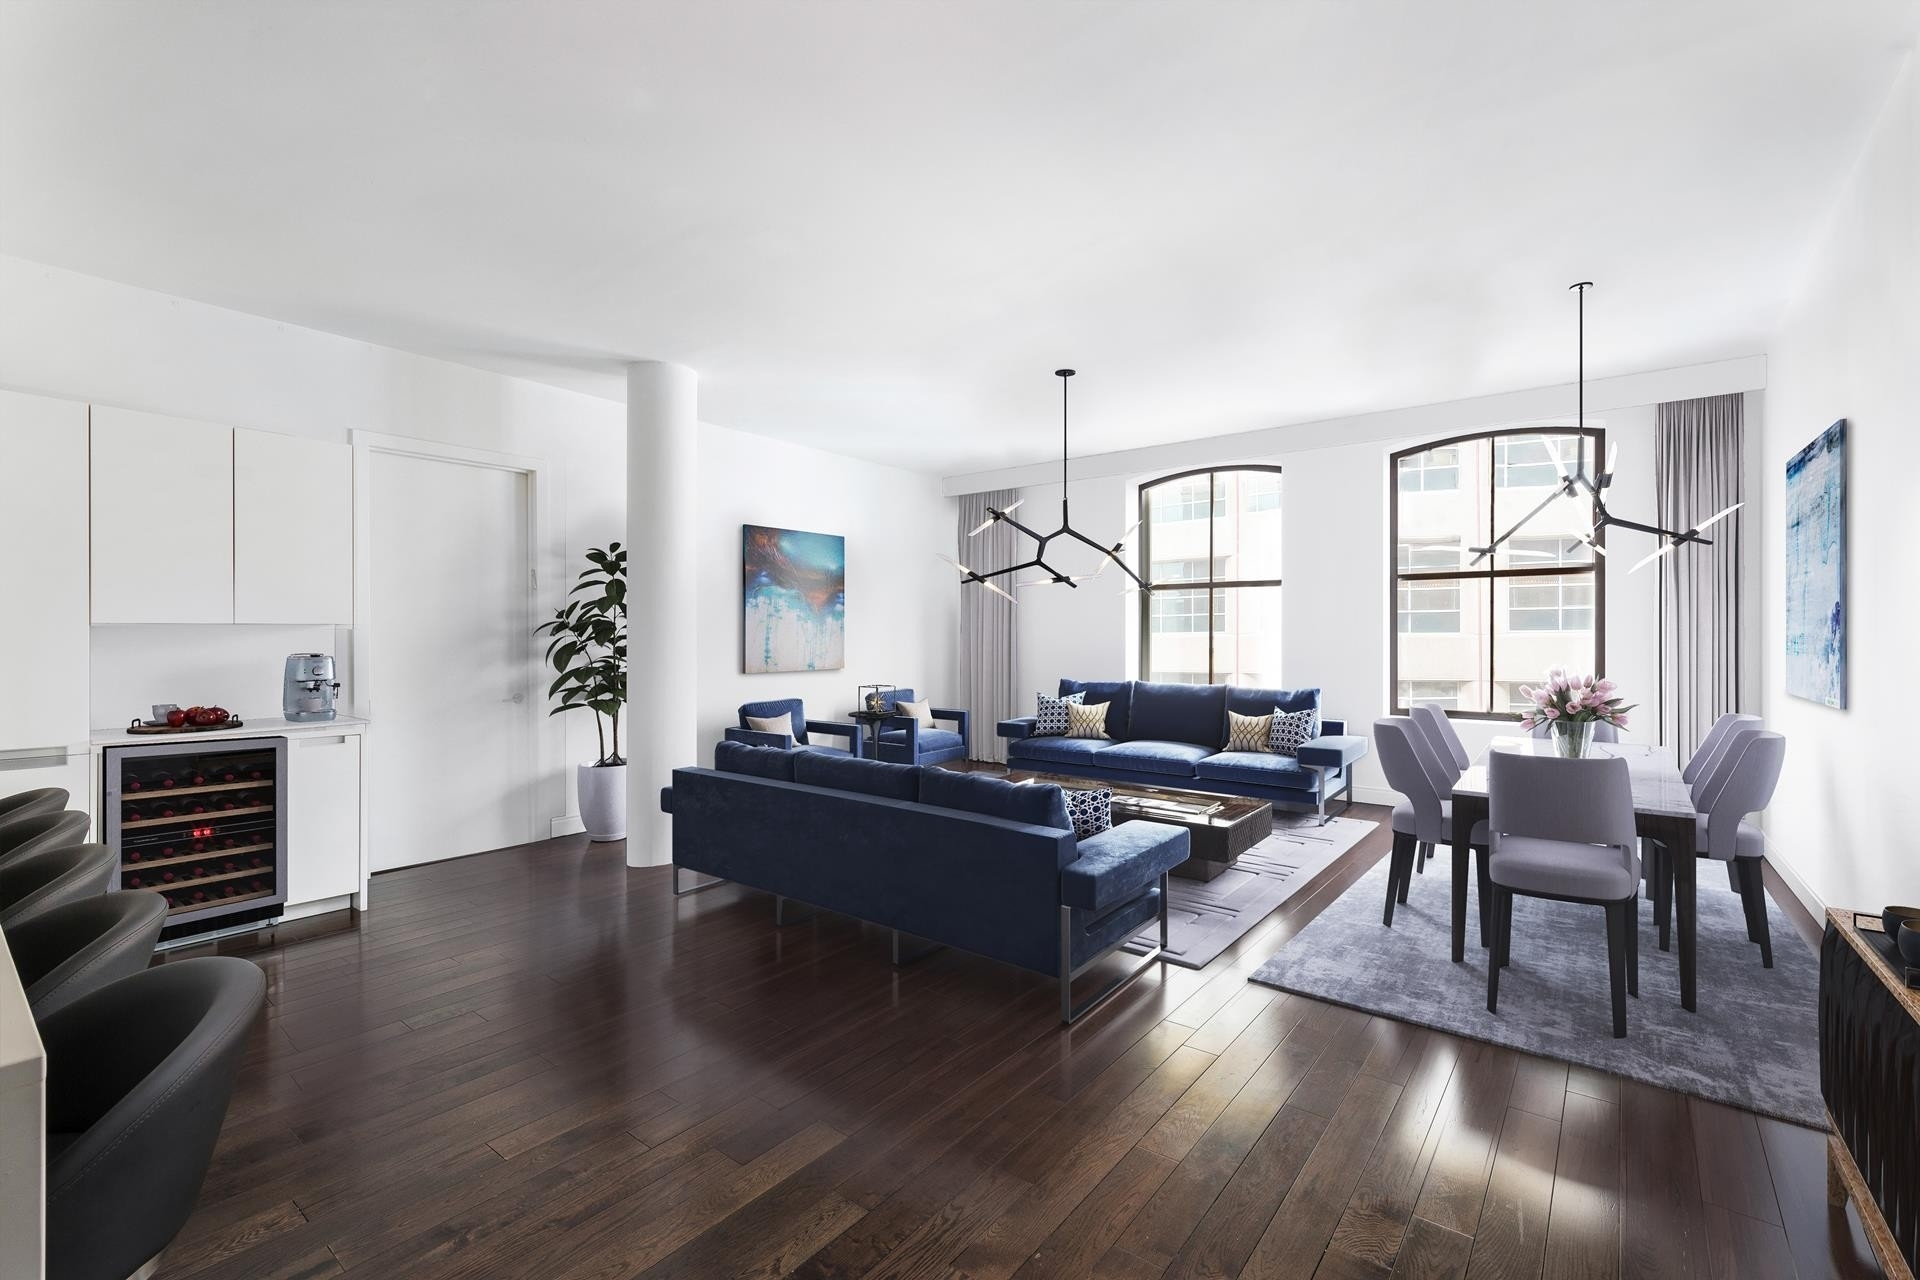 Condominium at 250 West St, 7F New York